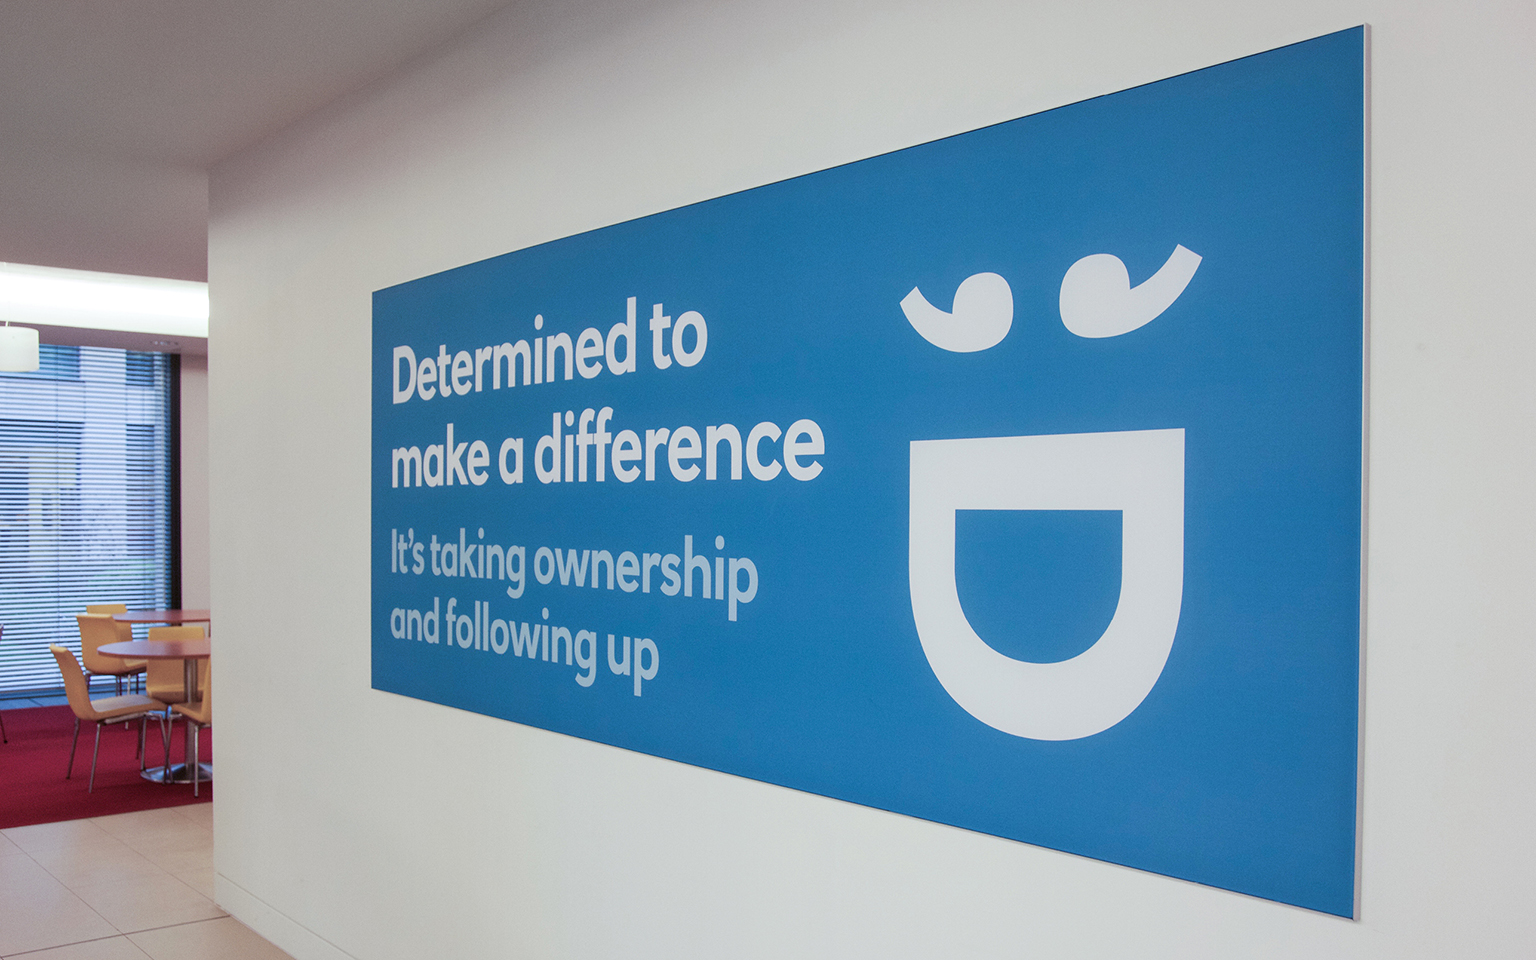 RBS Determined to make a difference